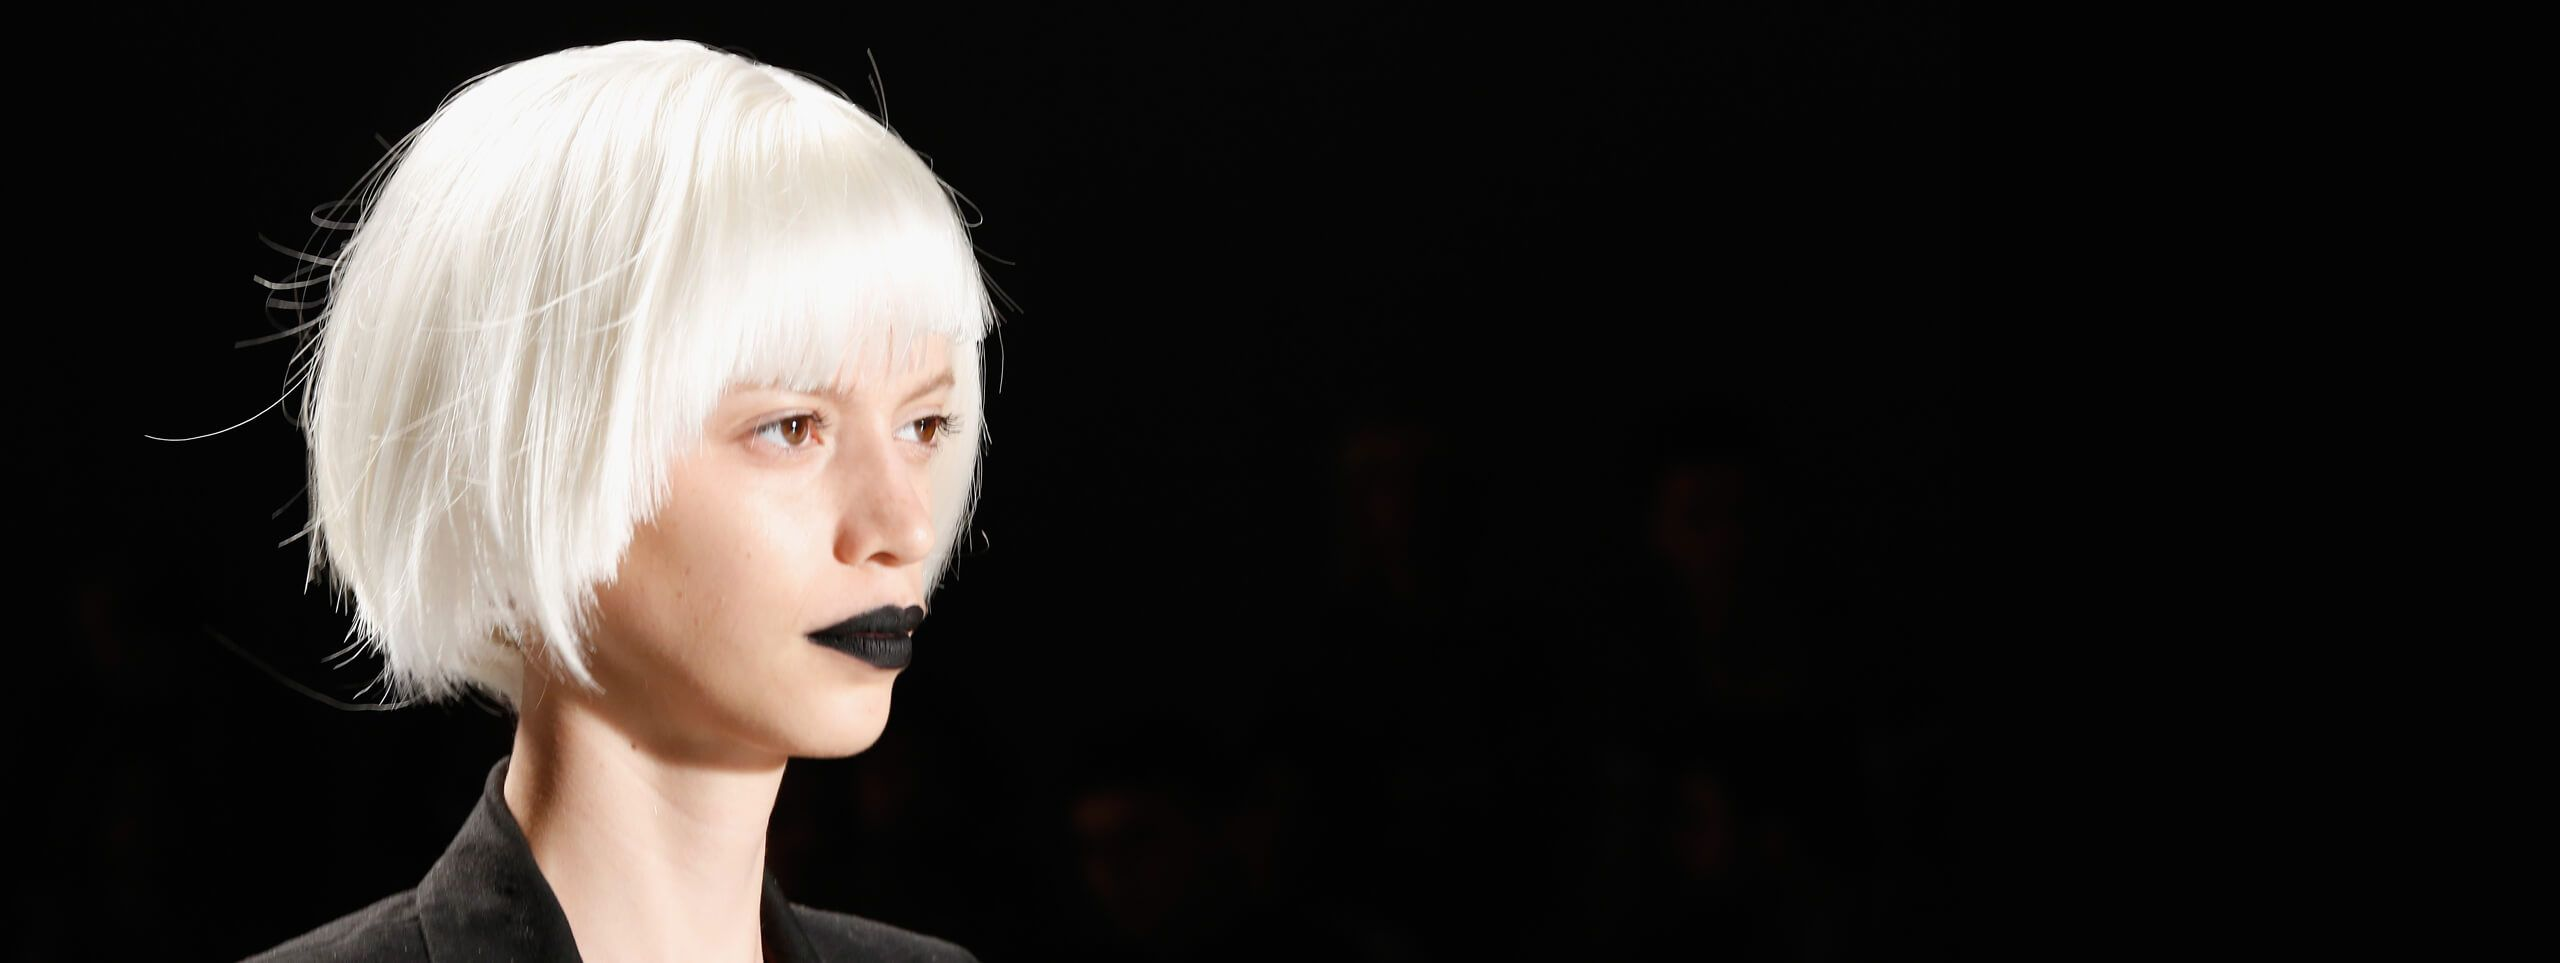 Model with white hair in short bob hairstyle with bangs